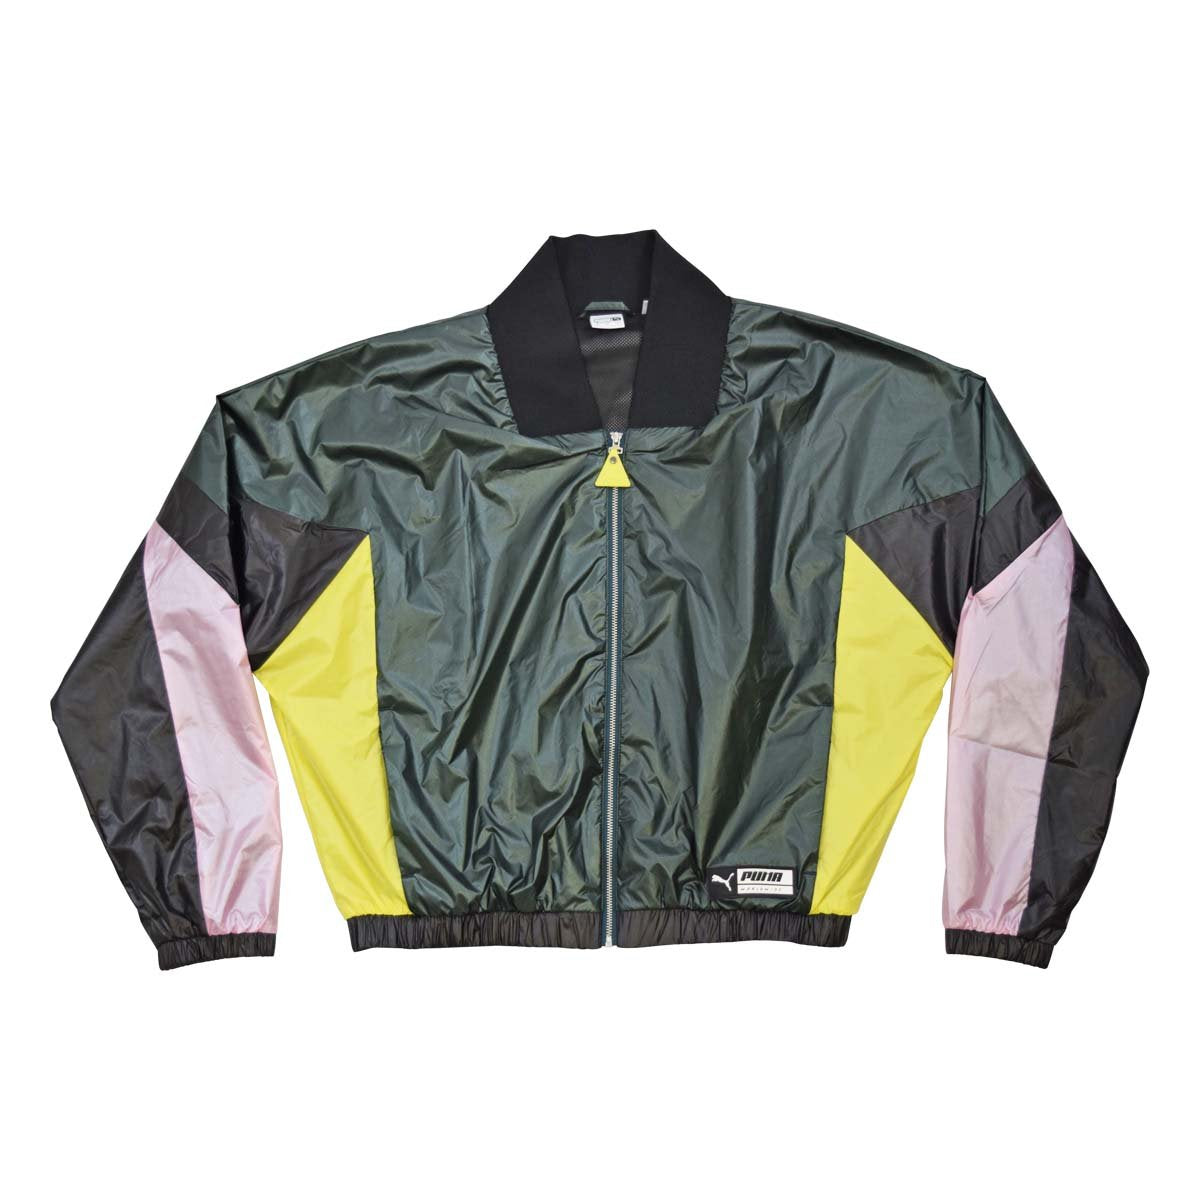 Trailblazer Women's Jacket